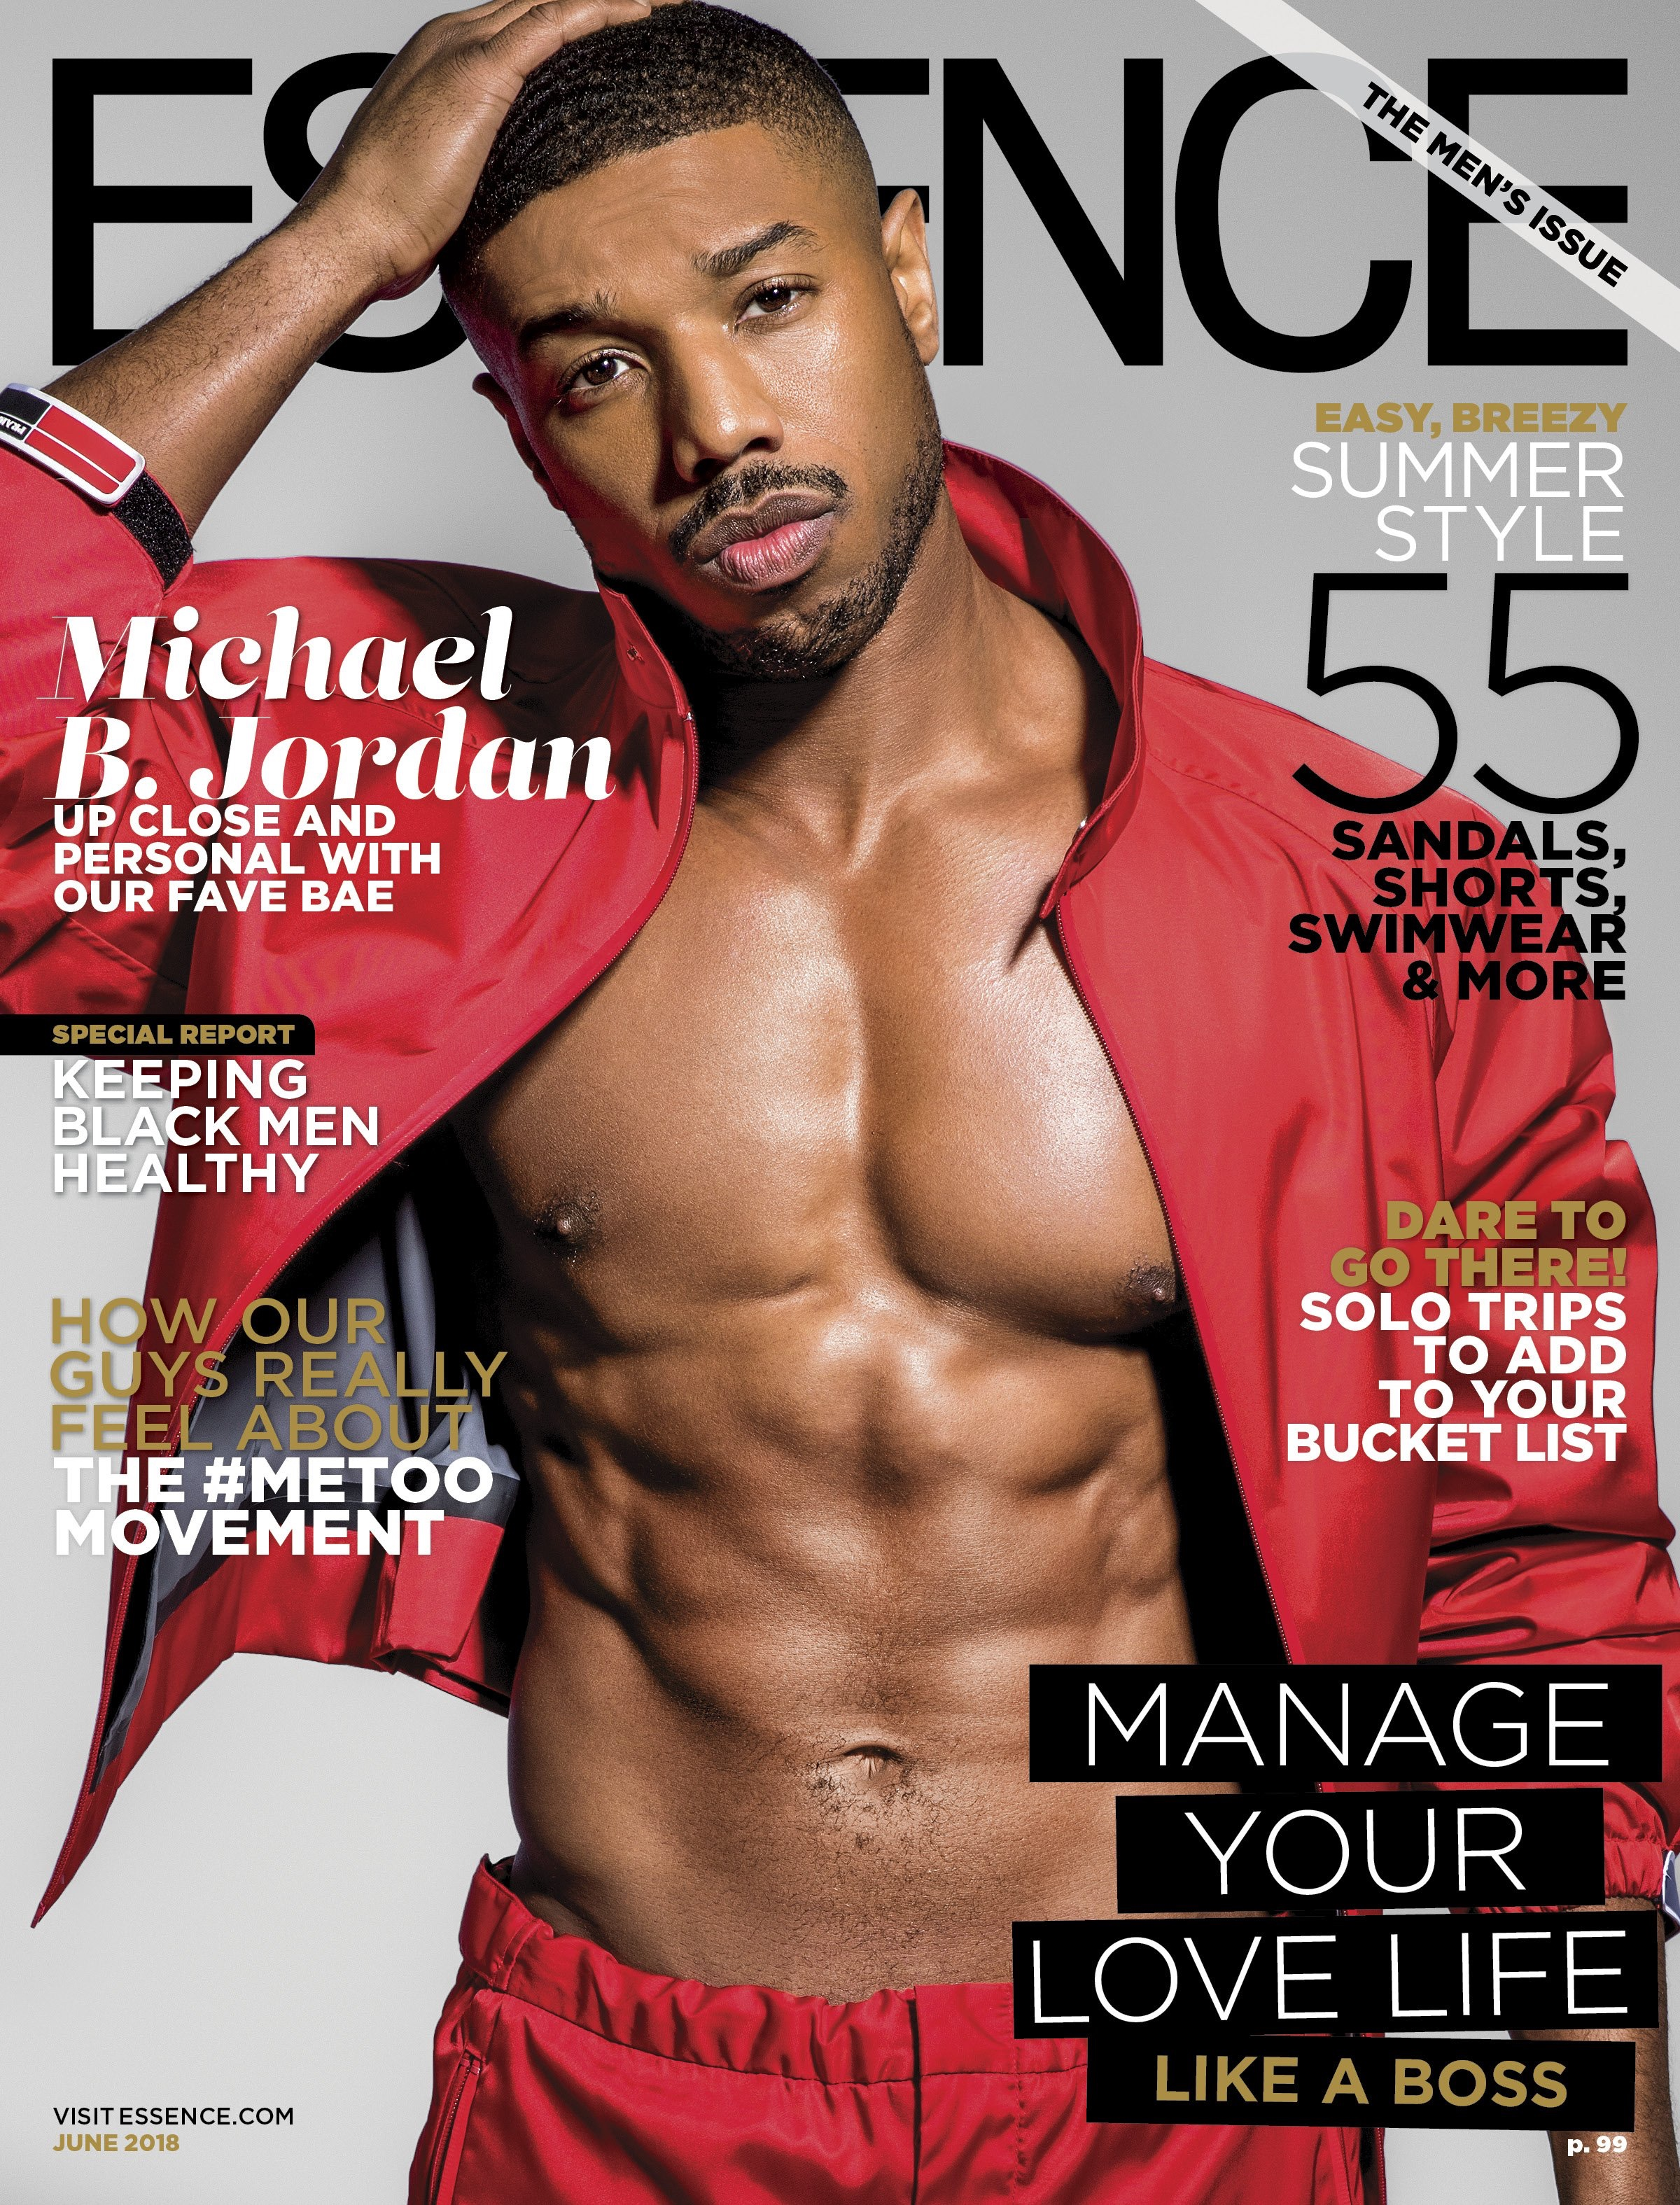 Essence cover with Michael B. Jordan wearing red track suit shirtless